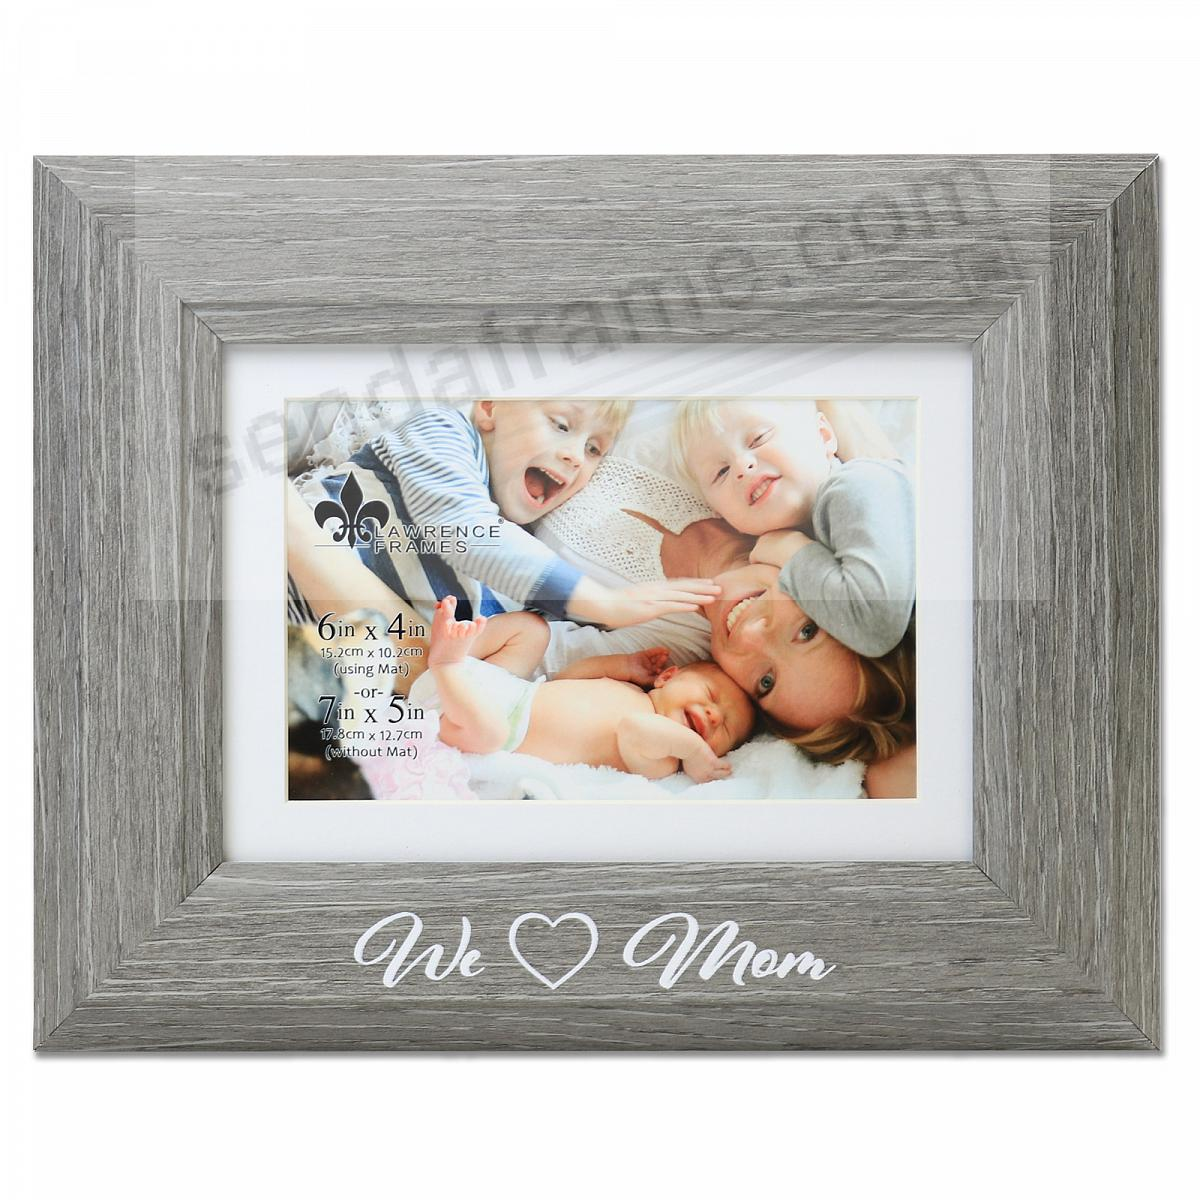 WE {HEART} MOM keepsake 7x5/6x4 frame